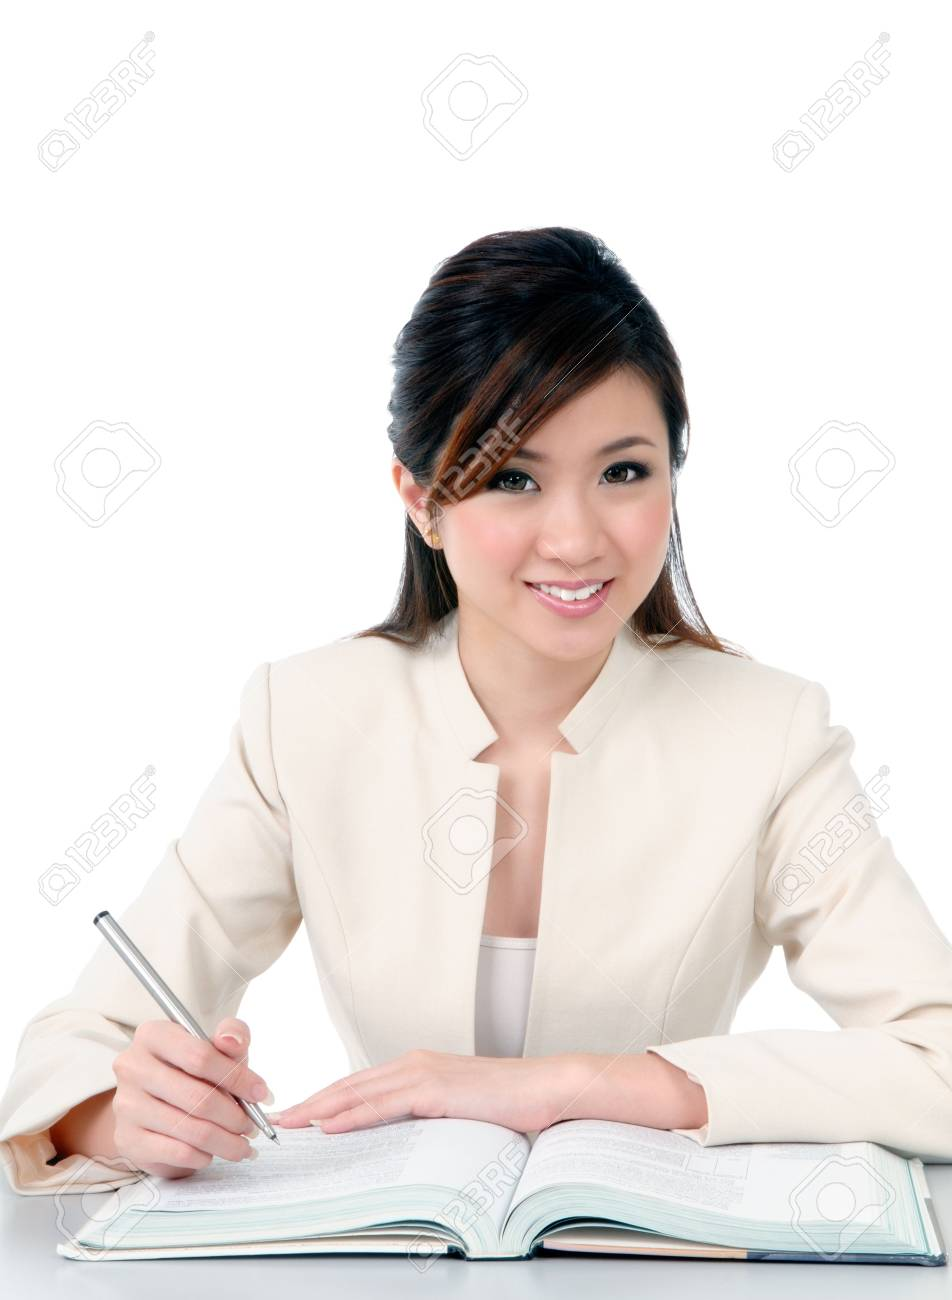 Portrait of a beautiful young businesswoman smiling over white background. Stock Photo - 7299381